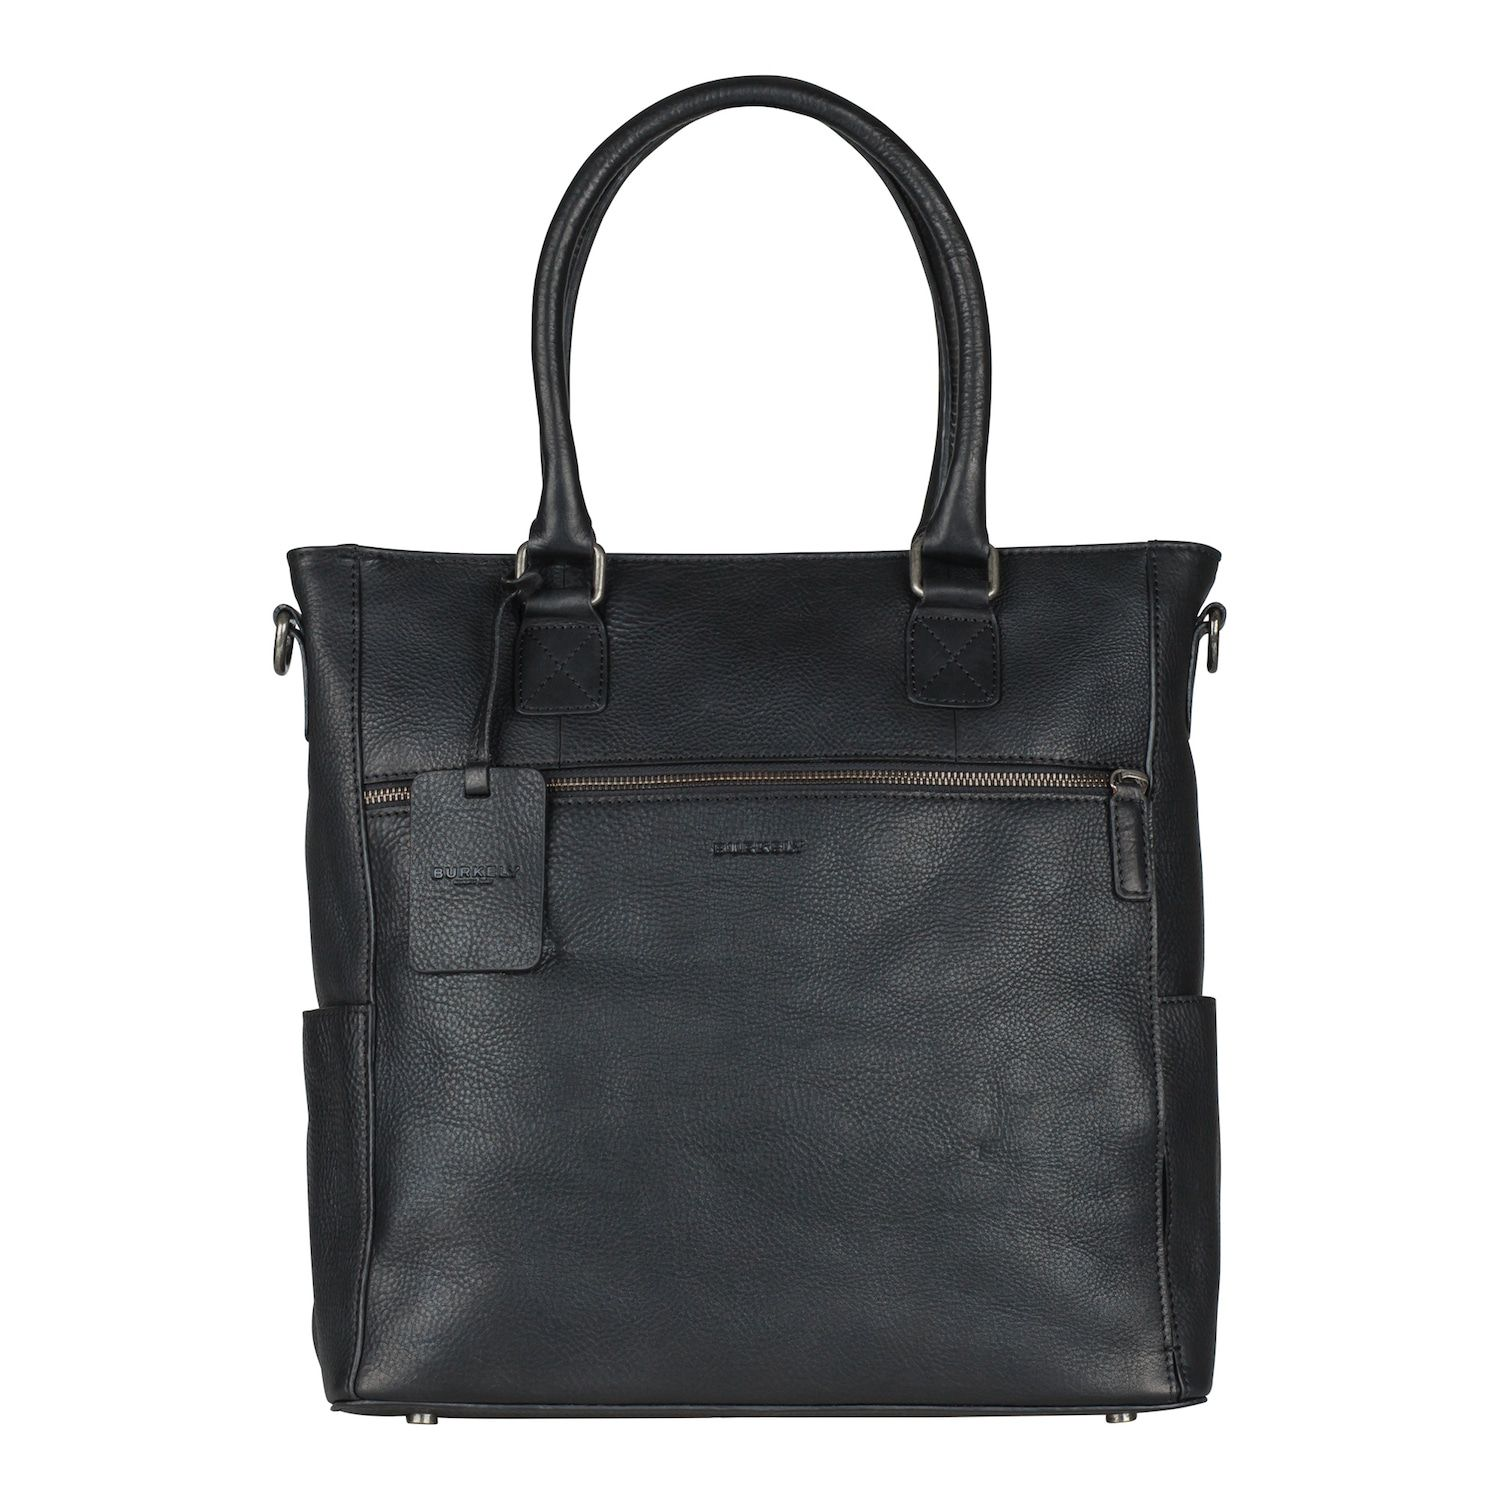 Burkely Antique Avery Shopper Black 13.3 inch